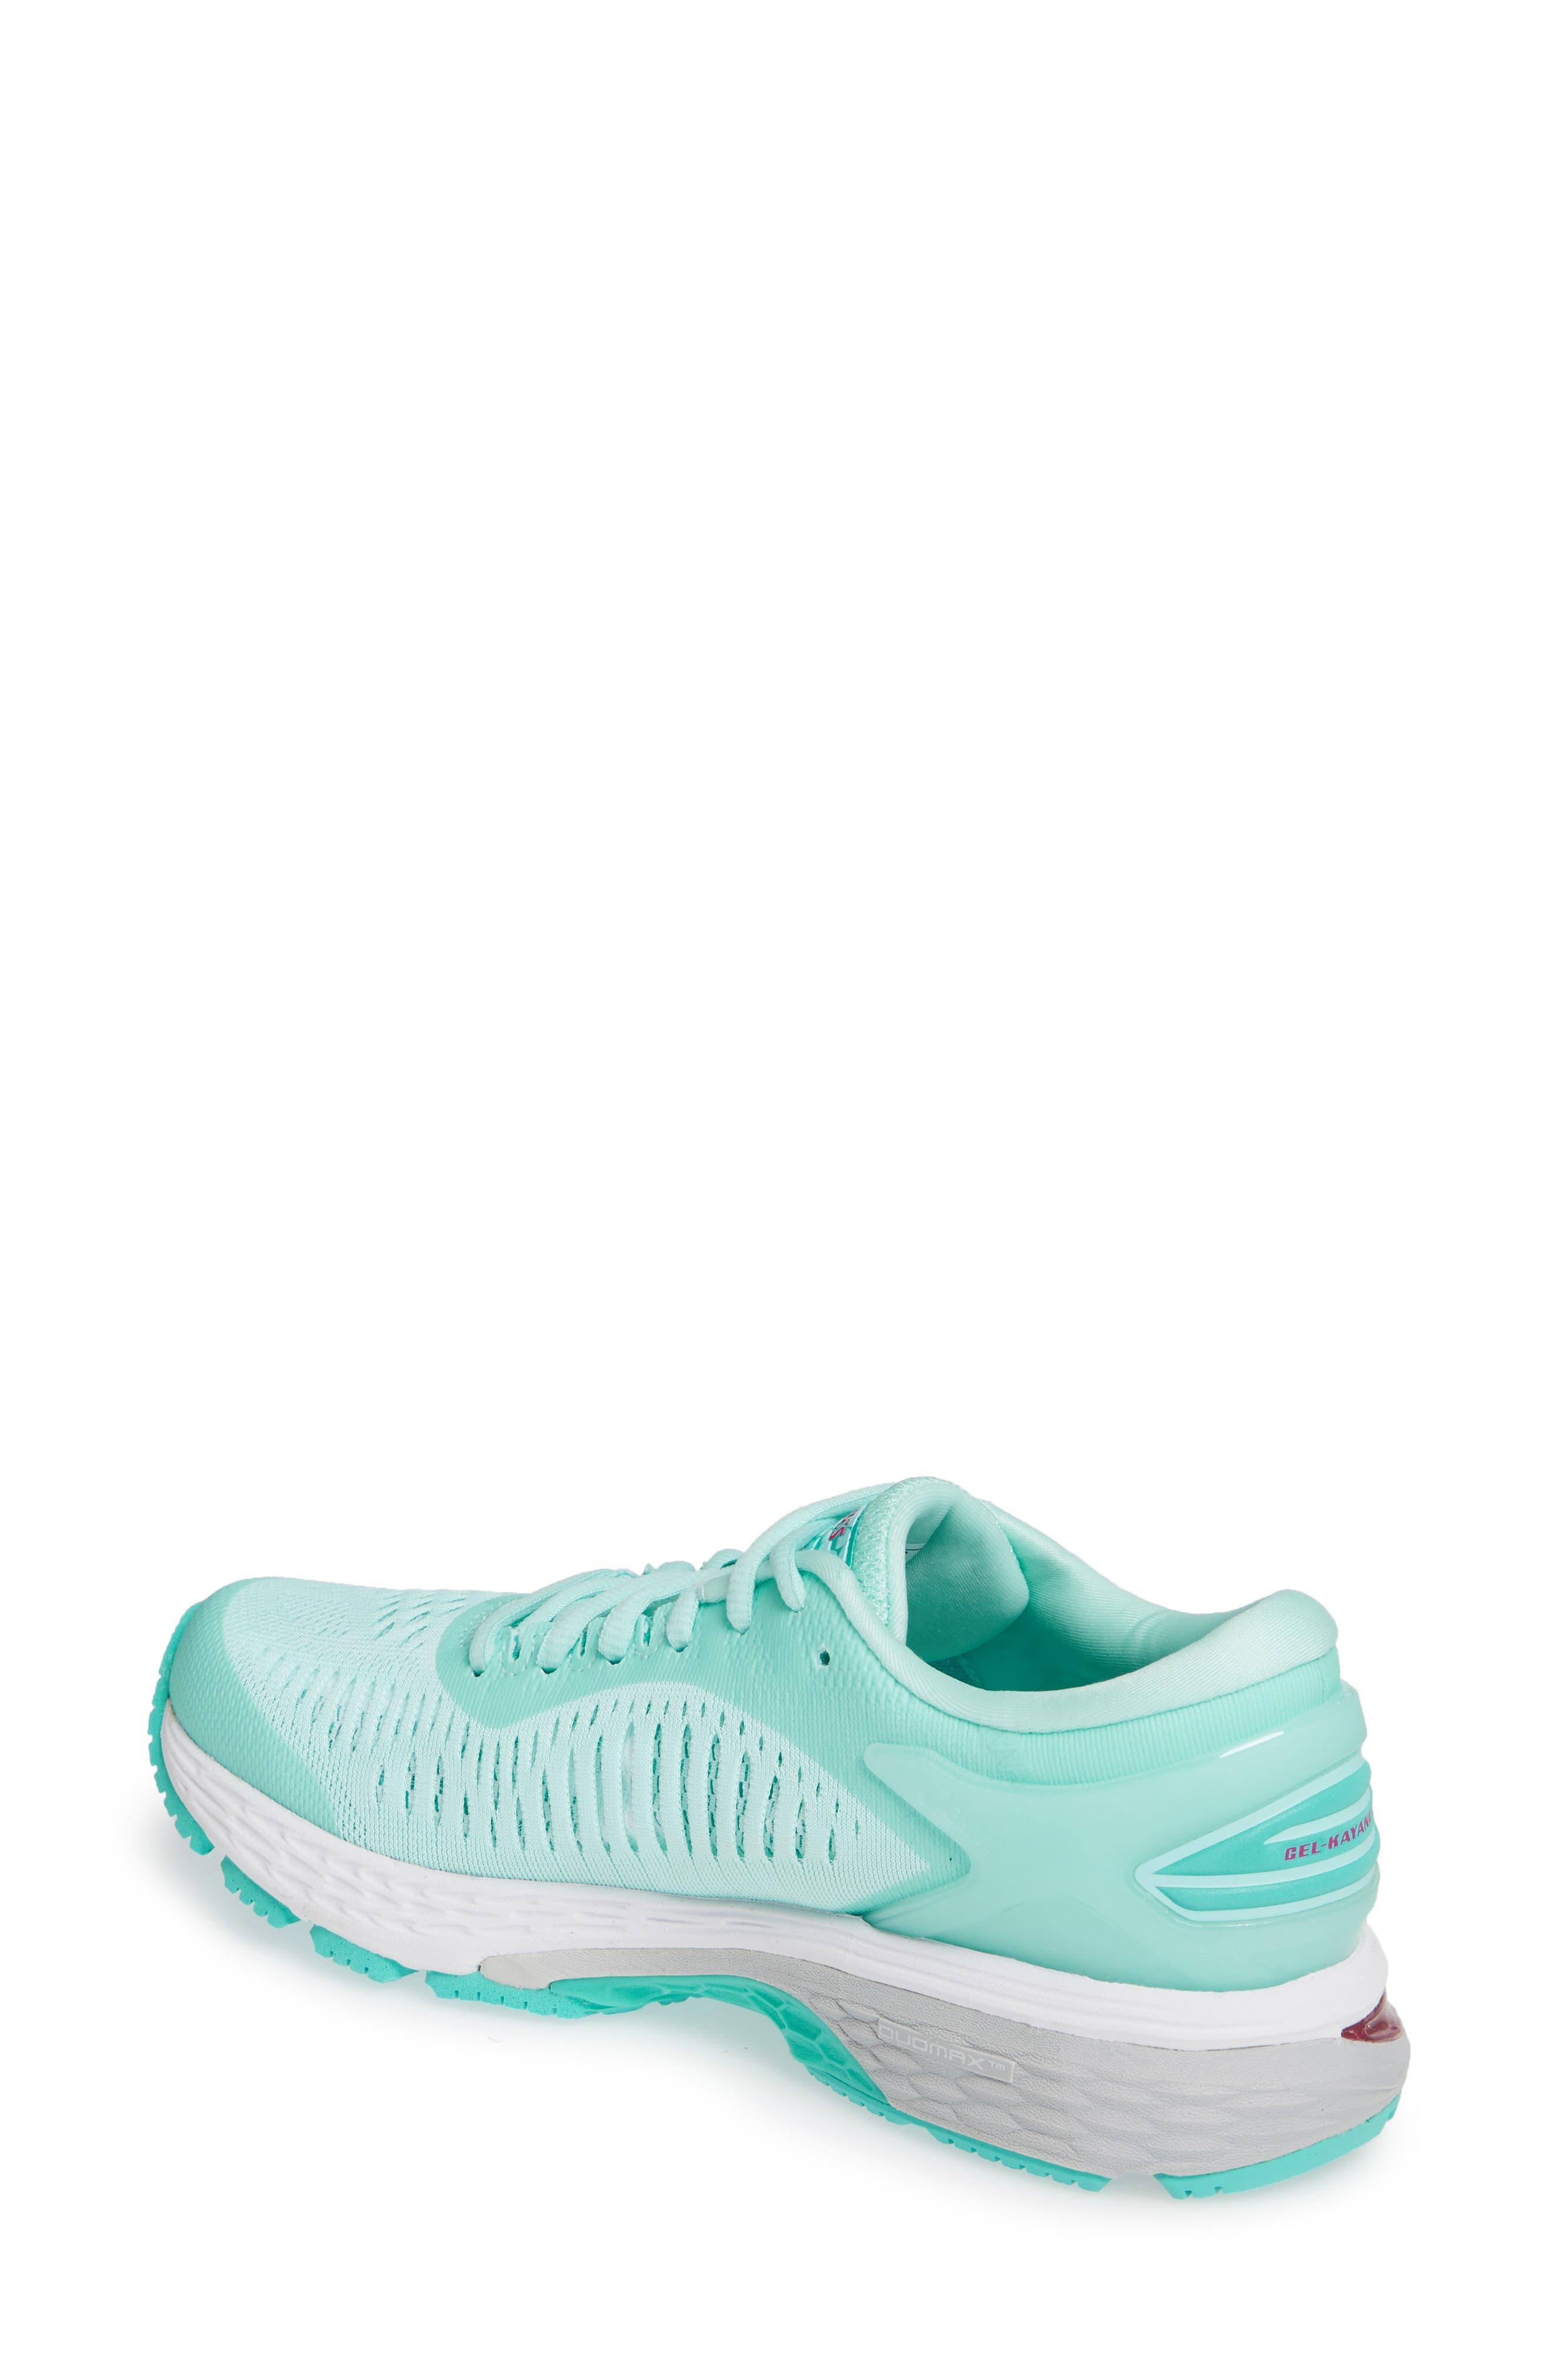 ASICS<SUP>®</SUP>, GEL-Kayano<sup>®</sup> 25 Running Shoe, Alternate thumbnail 2, color, ICY MORNING/ SEA GLASS